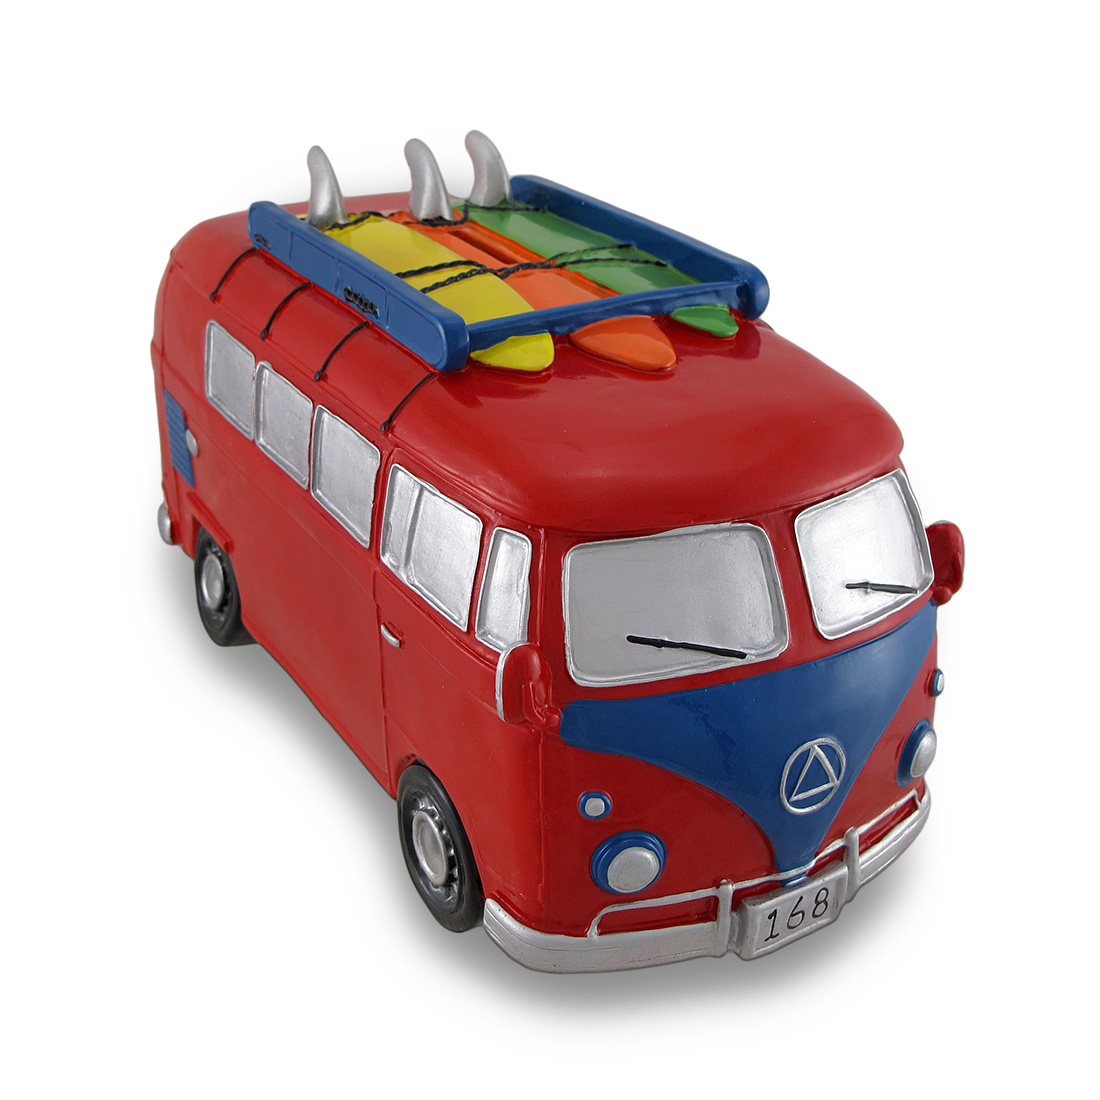 Red   Blue Surfer Van Large Piggy Bank Bus by King Max